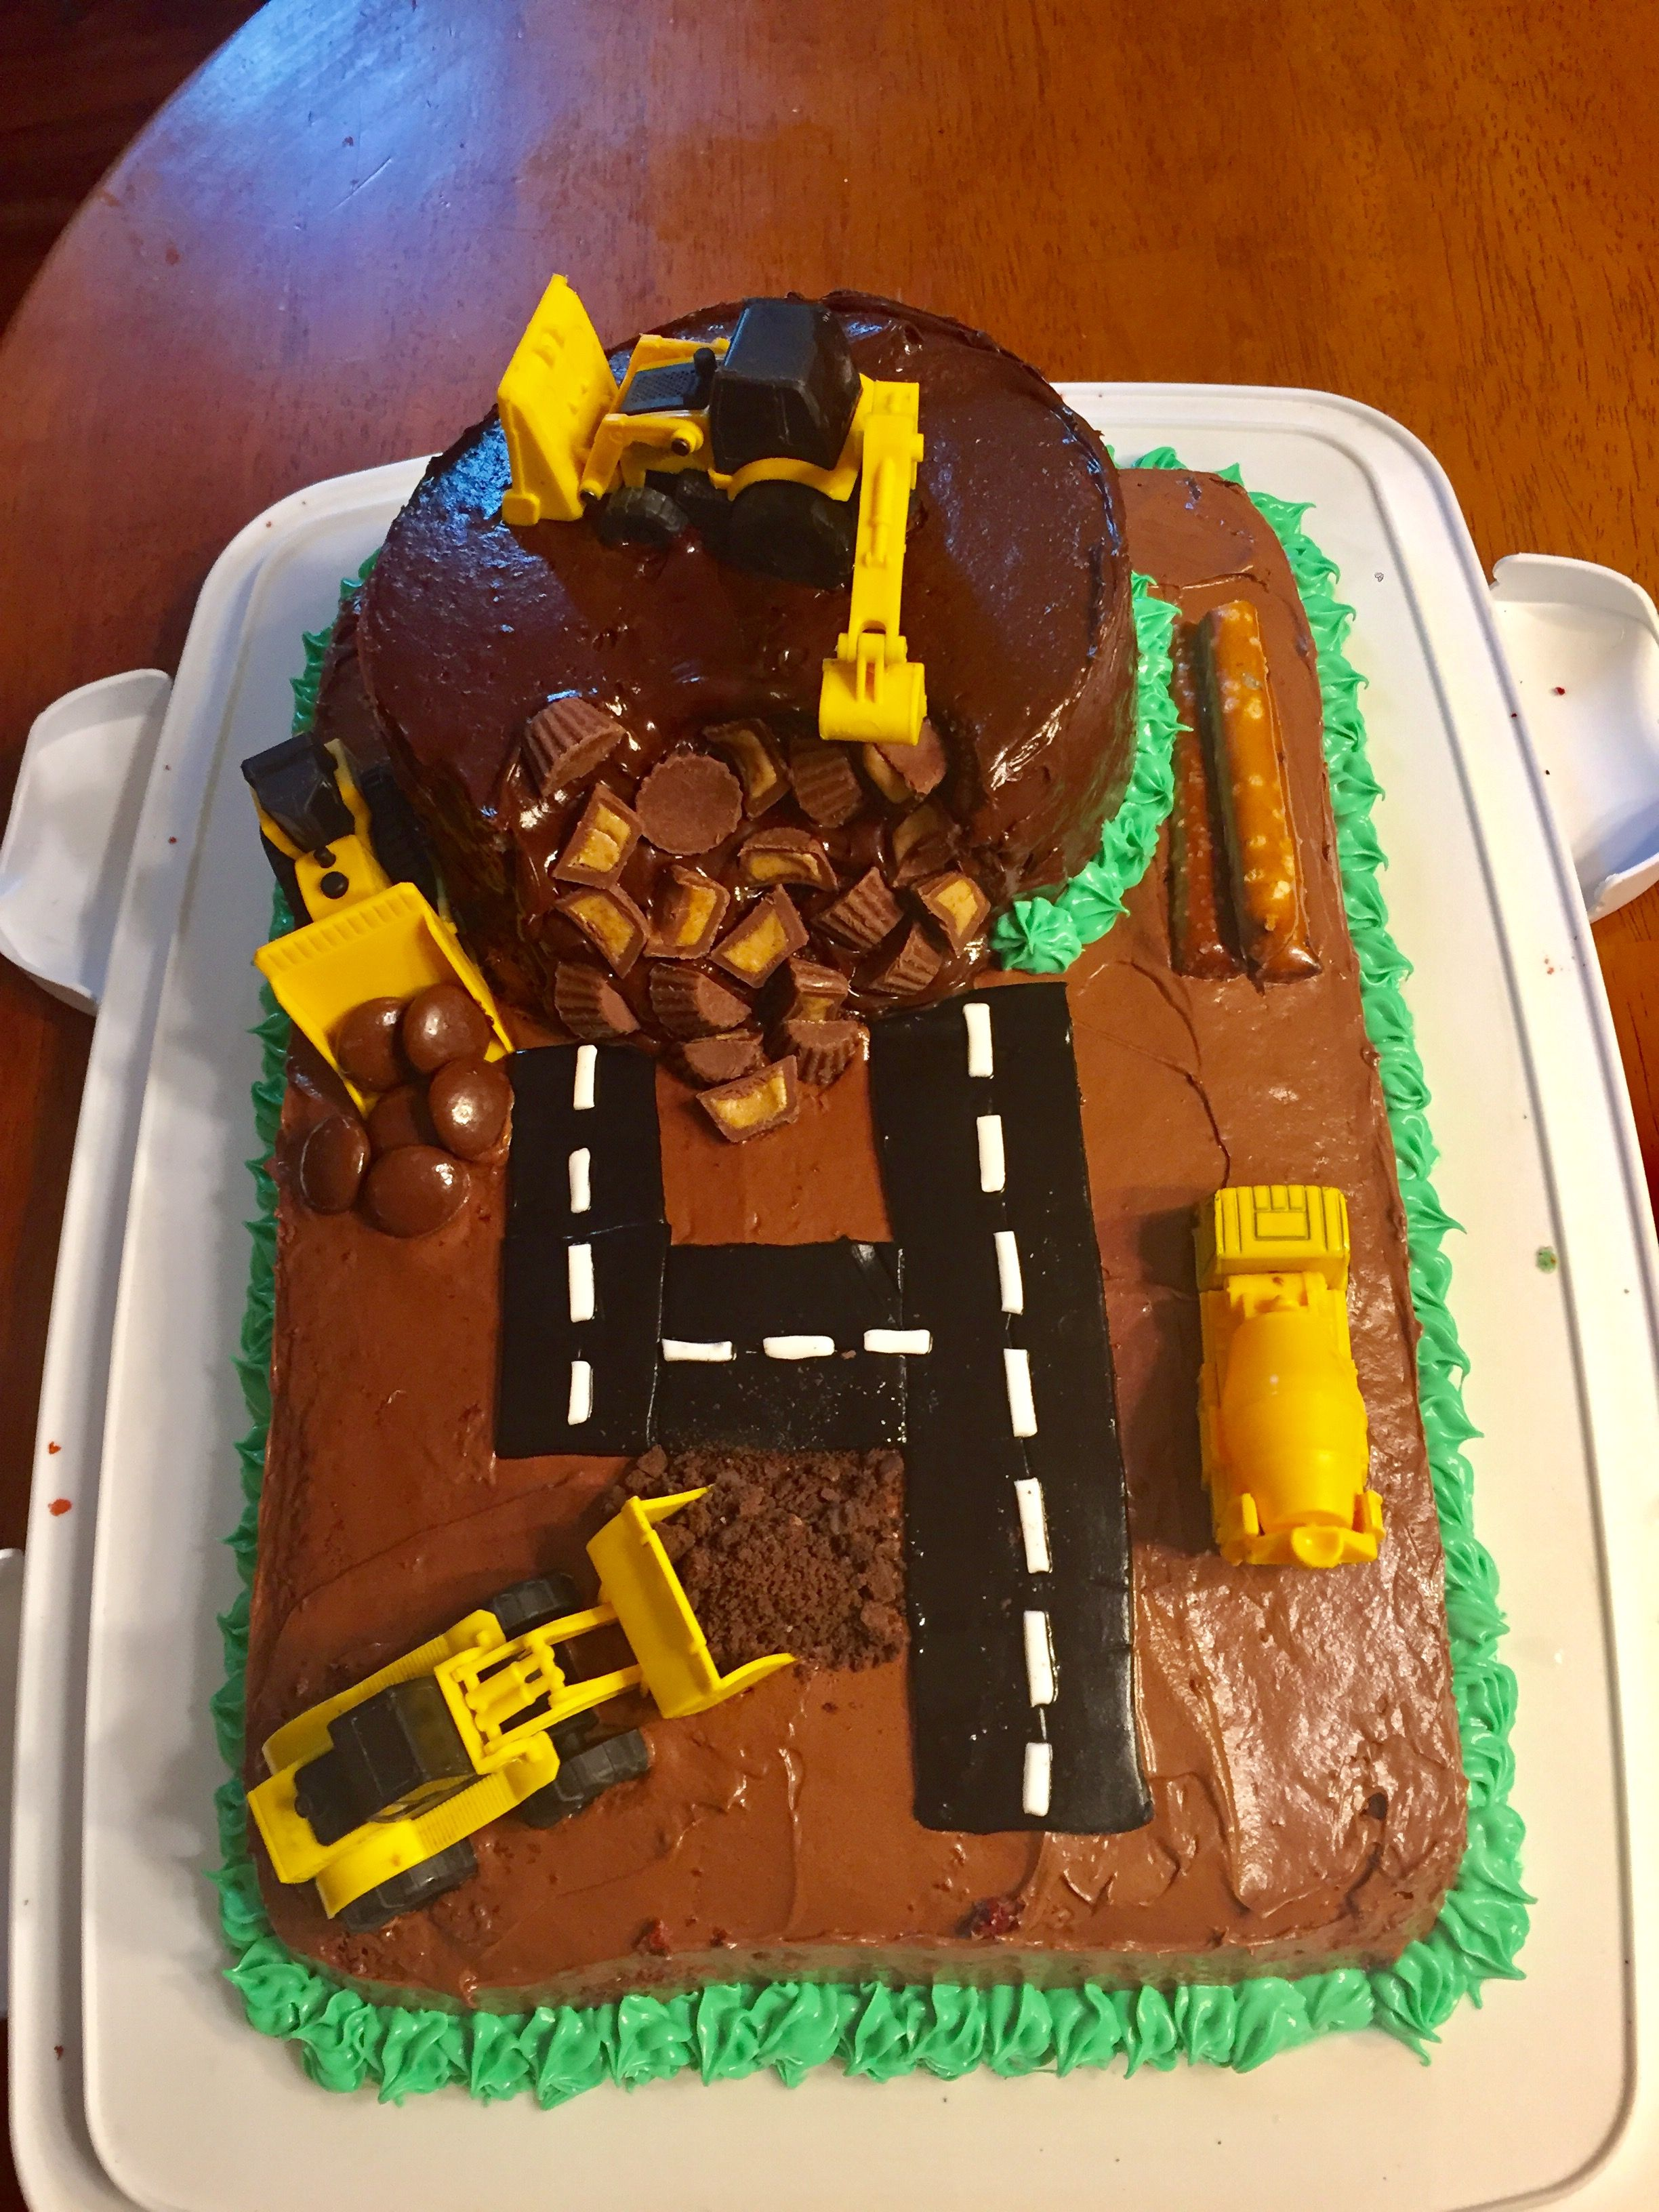 Construction birthday cake with sheet cake and 6 round